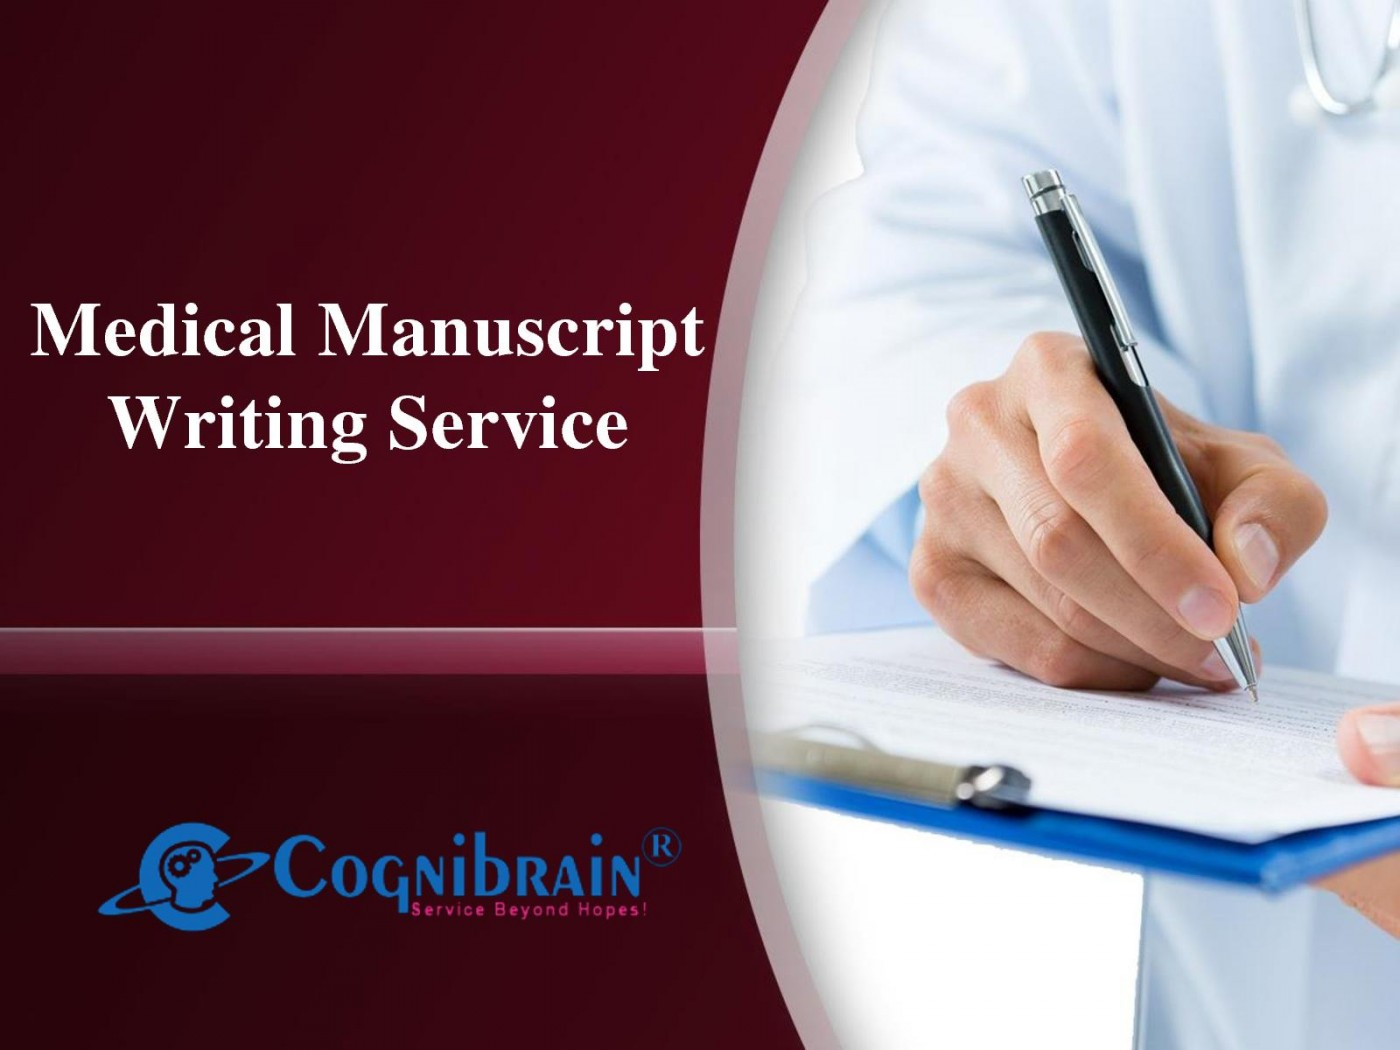 003 Researchs Writing Service Manuscript Services Outstanding Research Papers Paper In Chennai Mumbai College Reviews 1400